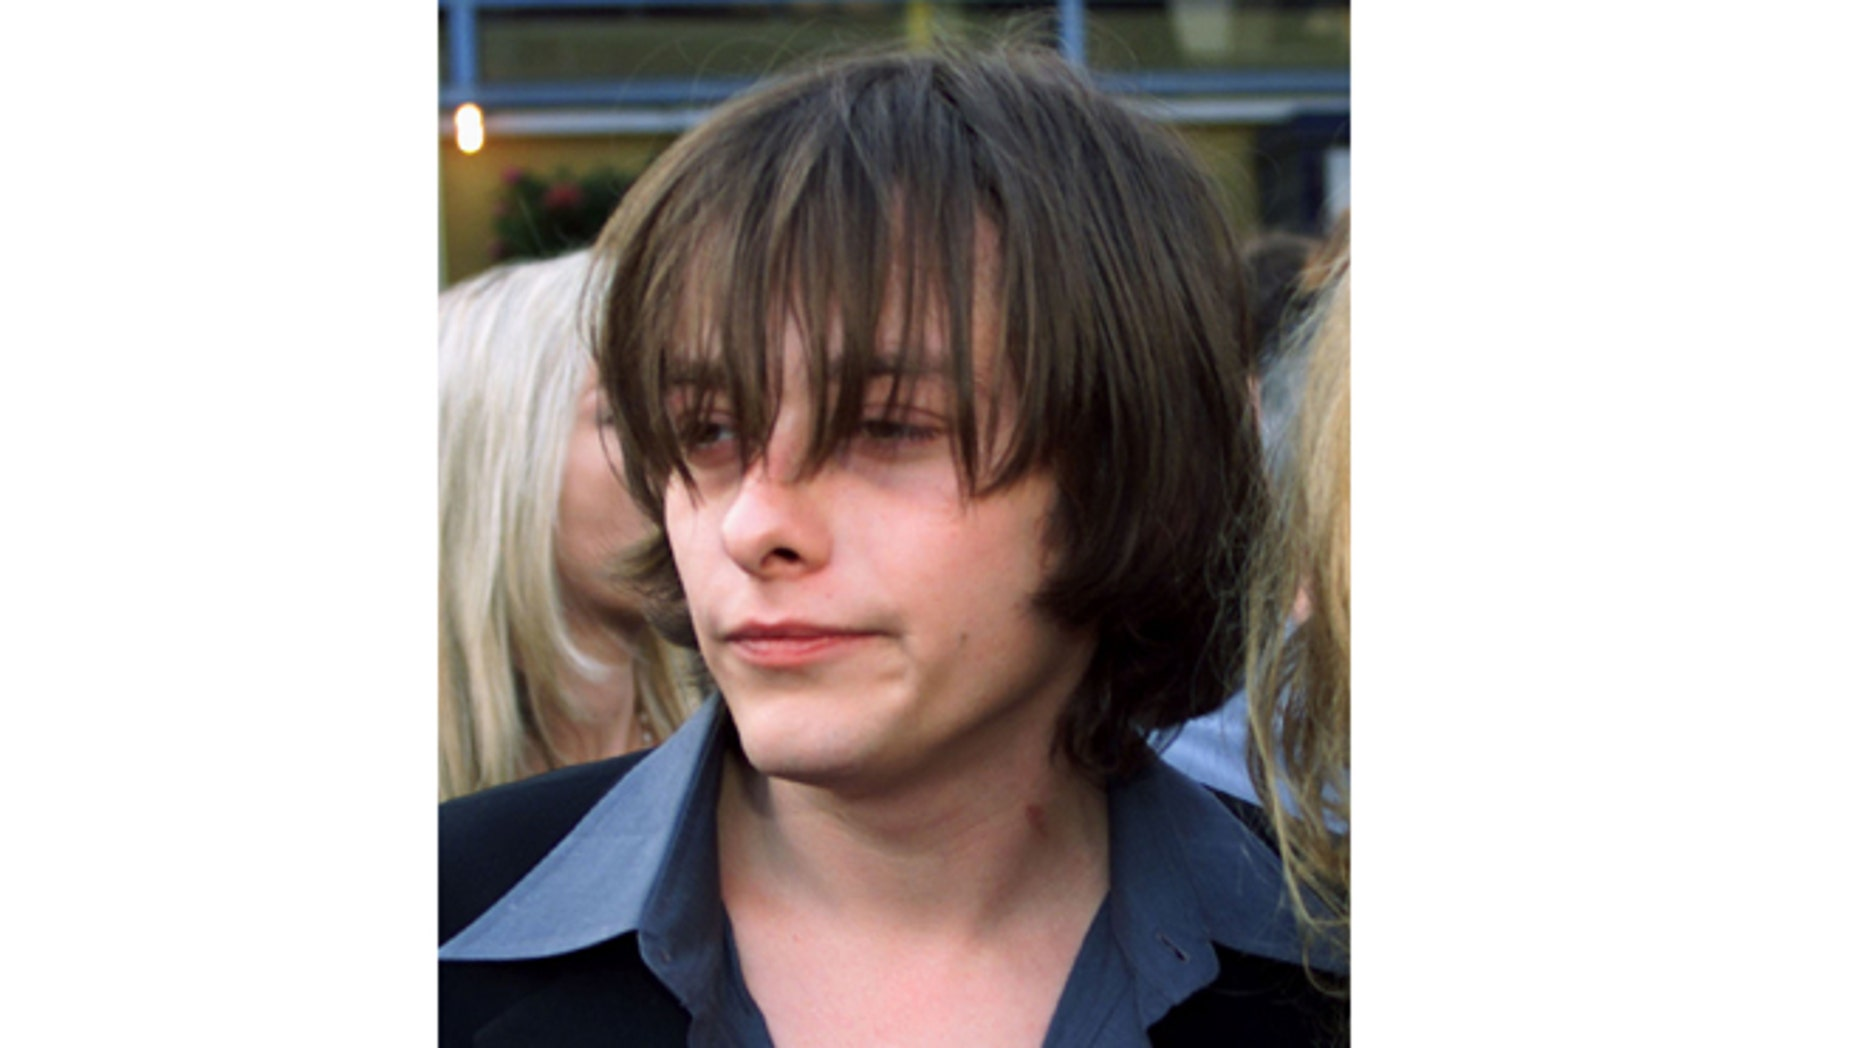 Actor Edward Furlong, shown in a file photo July 7, 1999 at a Los Angeles premiere.